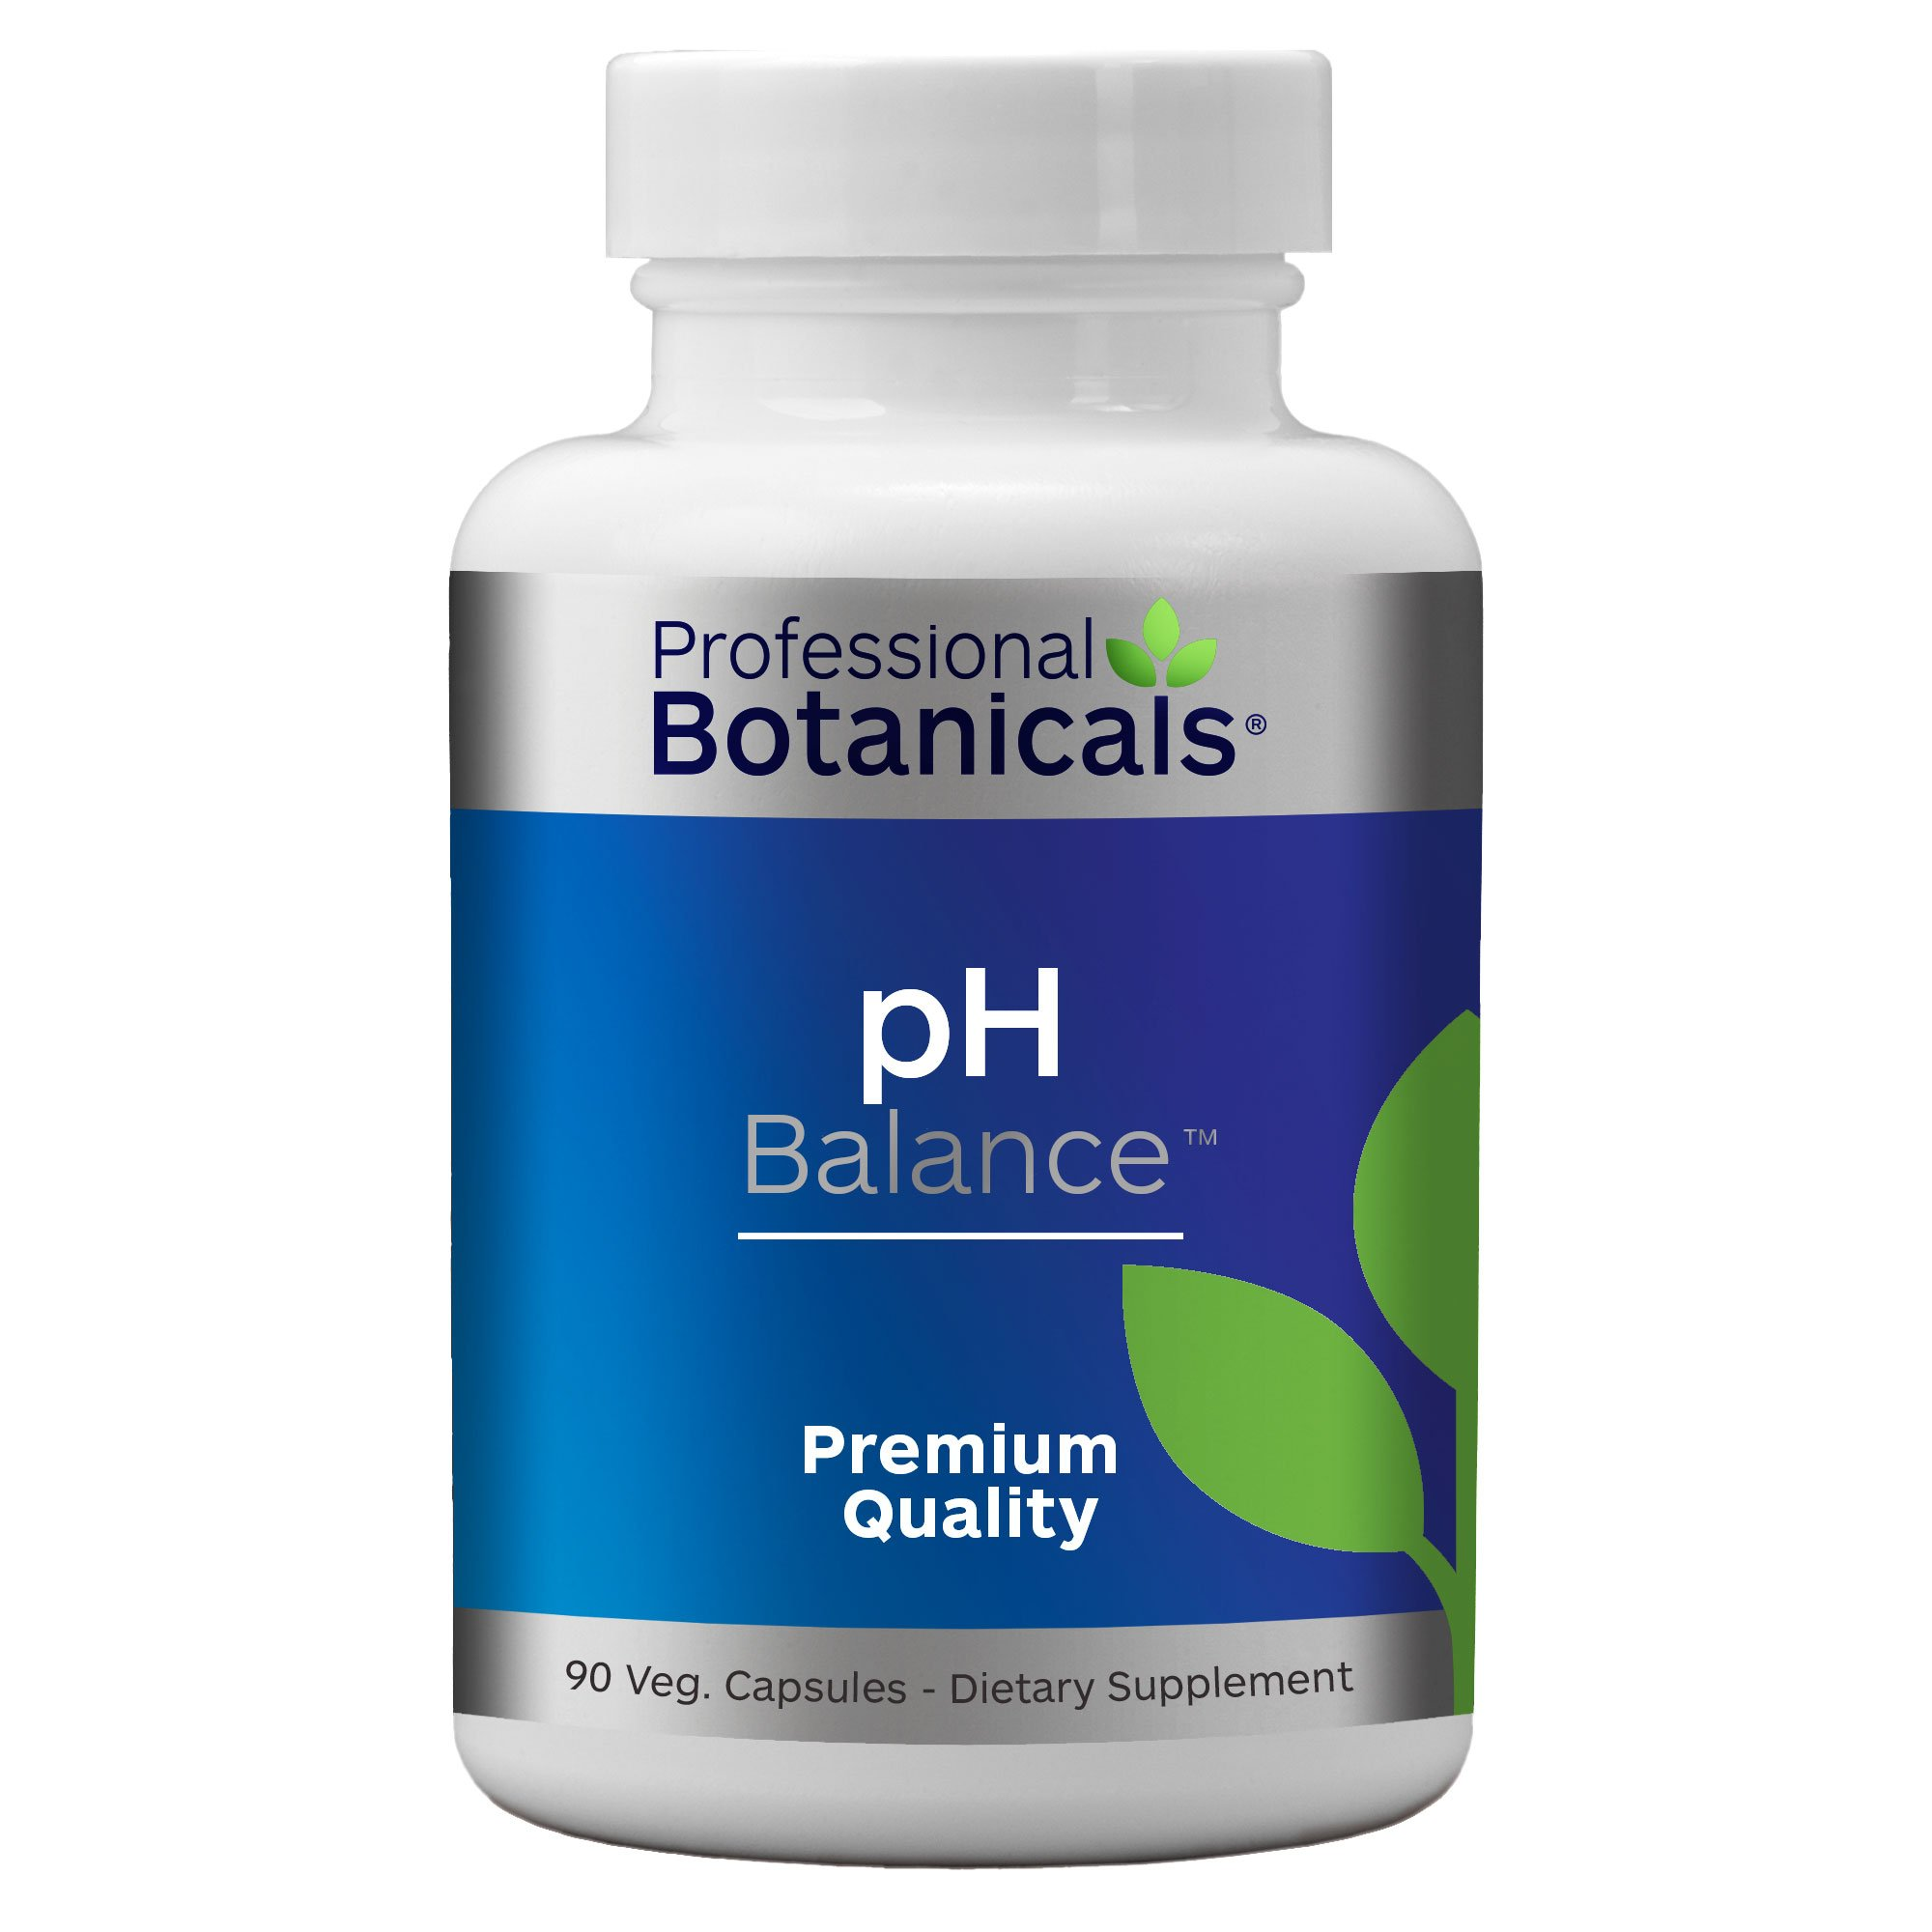 Professional Botanicals PH Balance - Multimineral Supplement for Healthy pH Balance and Reduced Acidity - 90 vegetarian capsules